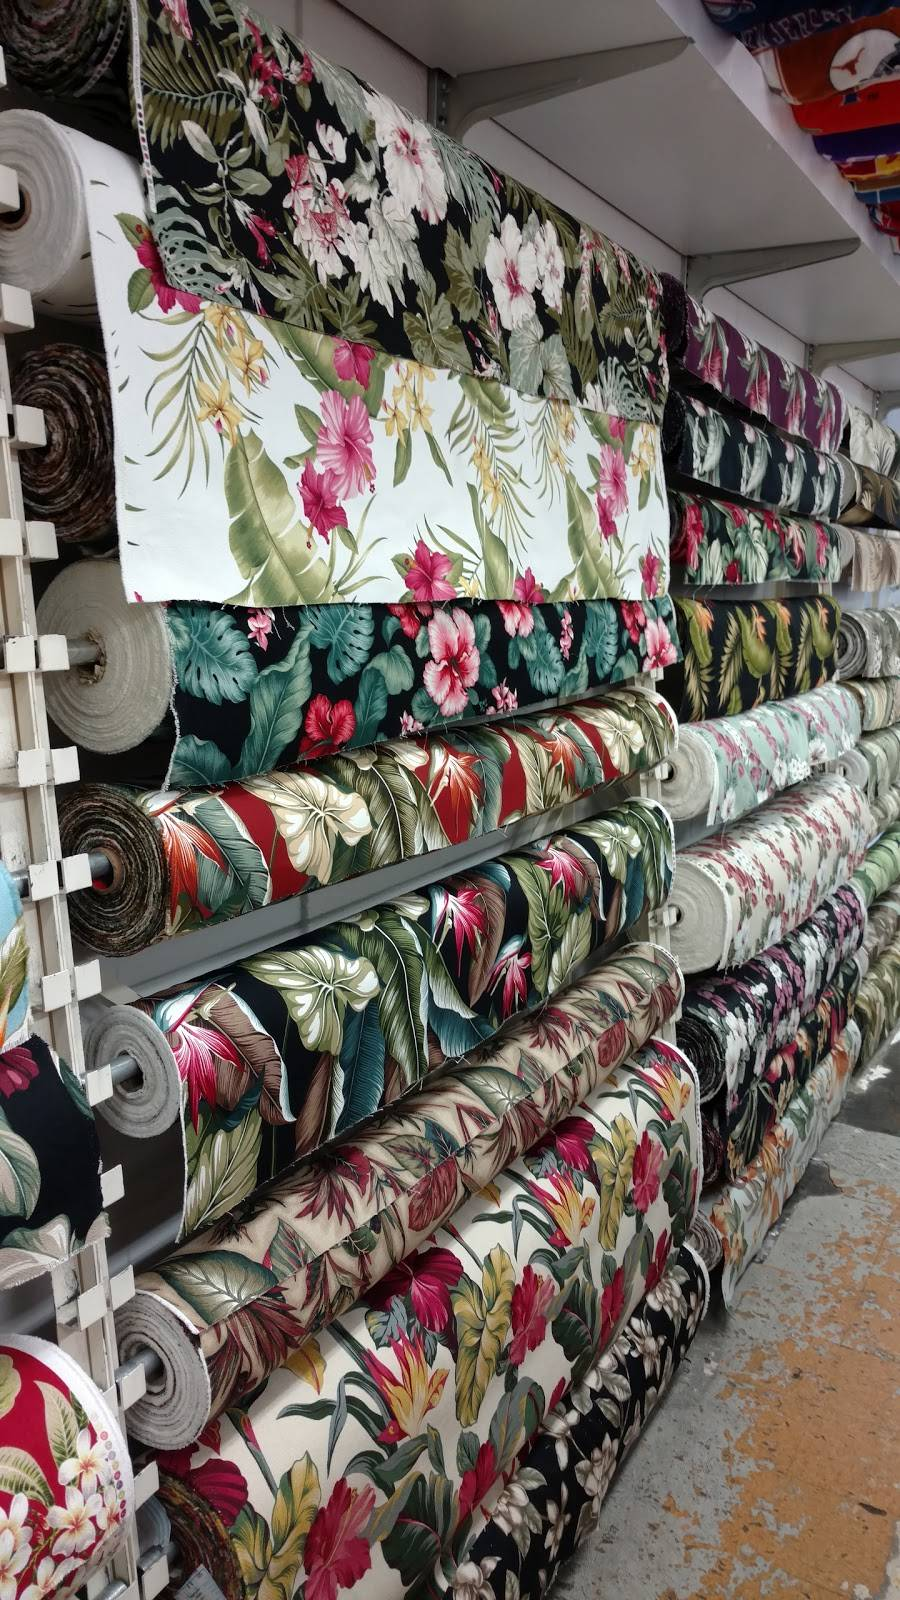 Fabric Mart - home goods store  | Photo 2 of 10 | Address: 45-681 Kamehameha Hwy, Kaneohe, HI 96744, USA | Phone: (808) 234-6604